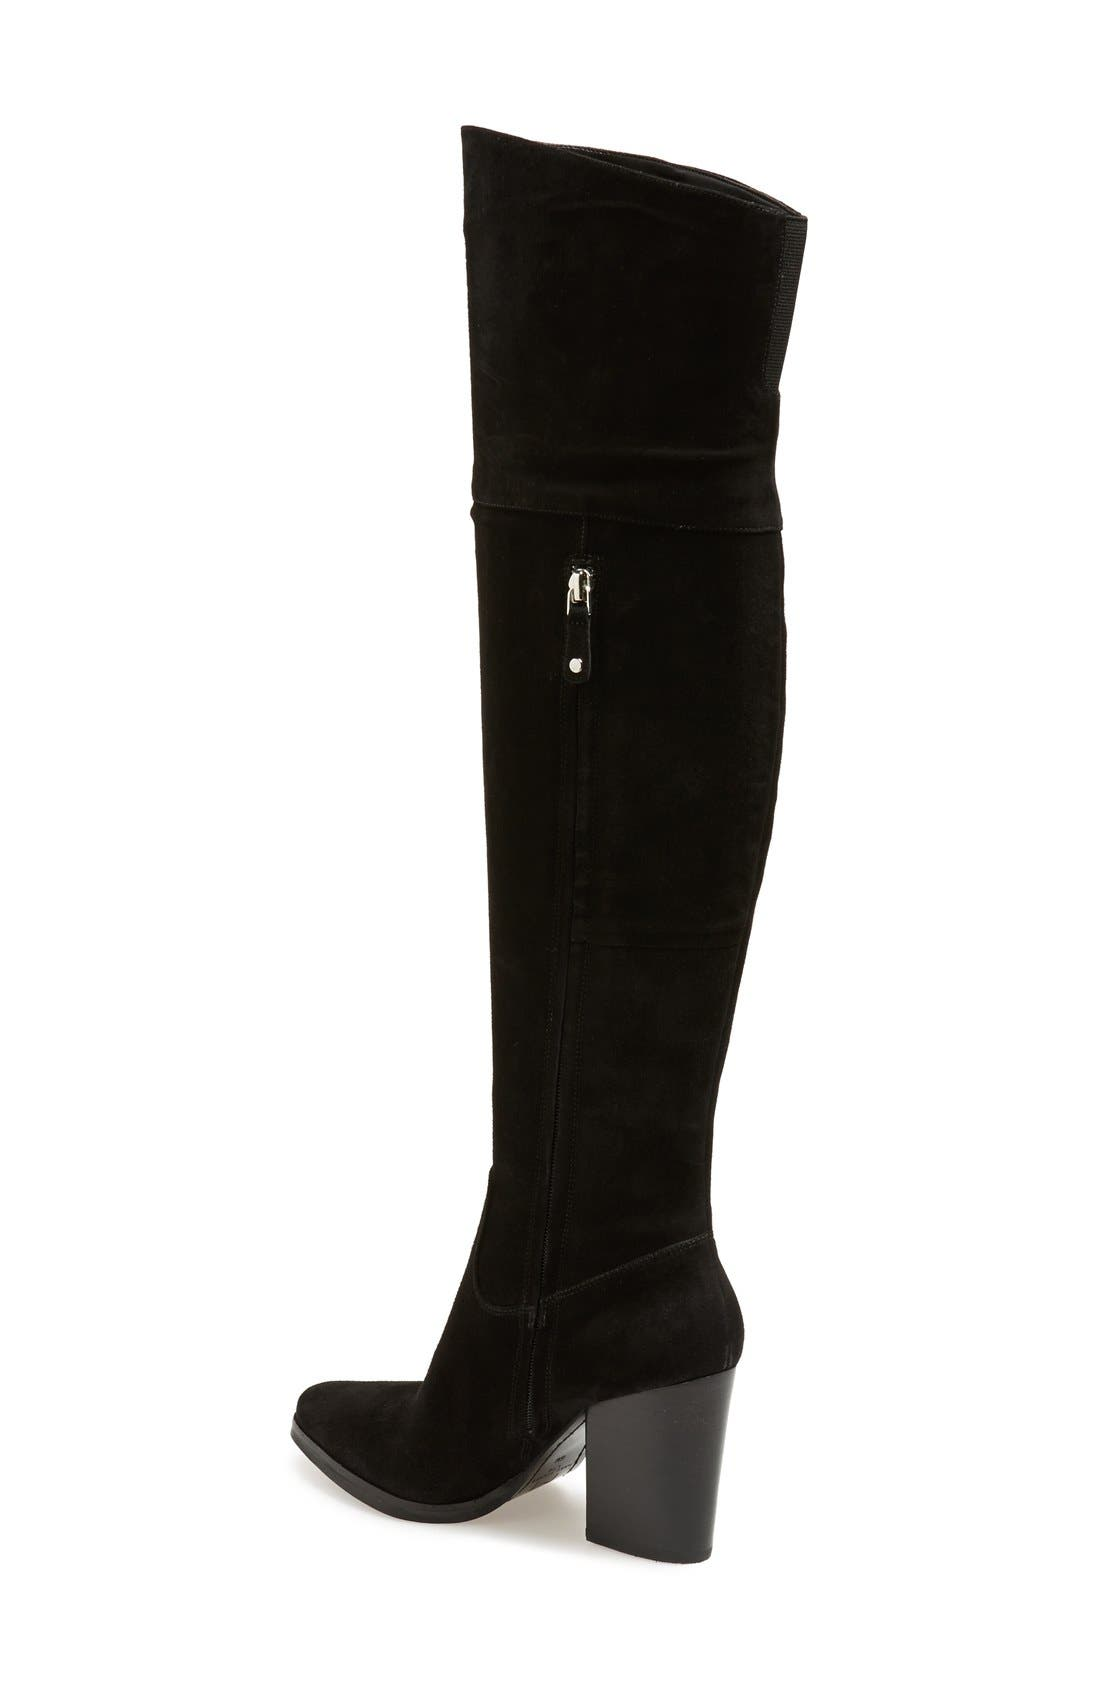 Alternate Image 2  - Marc Fisher LTD 'Alana' Over the Knee Boot (Women) (Narrow Calf)